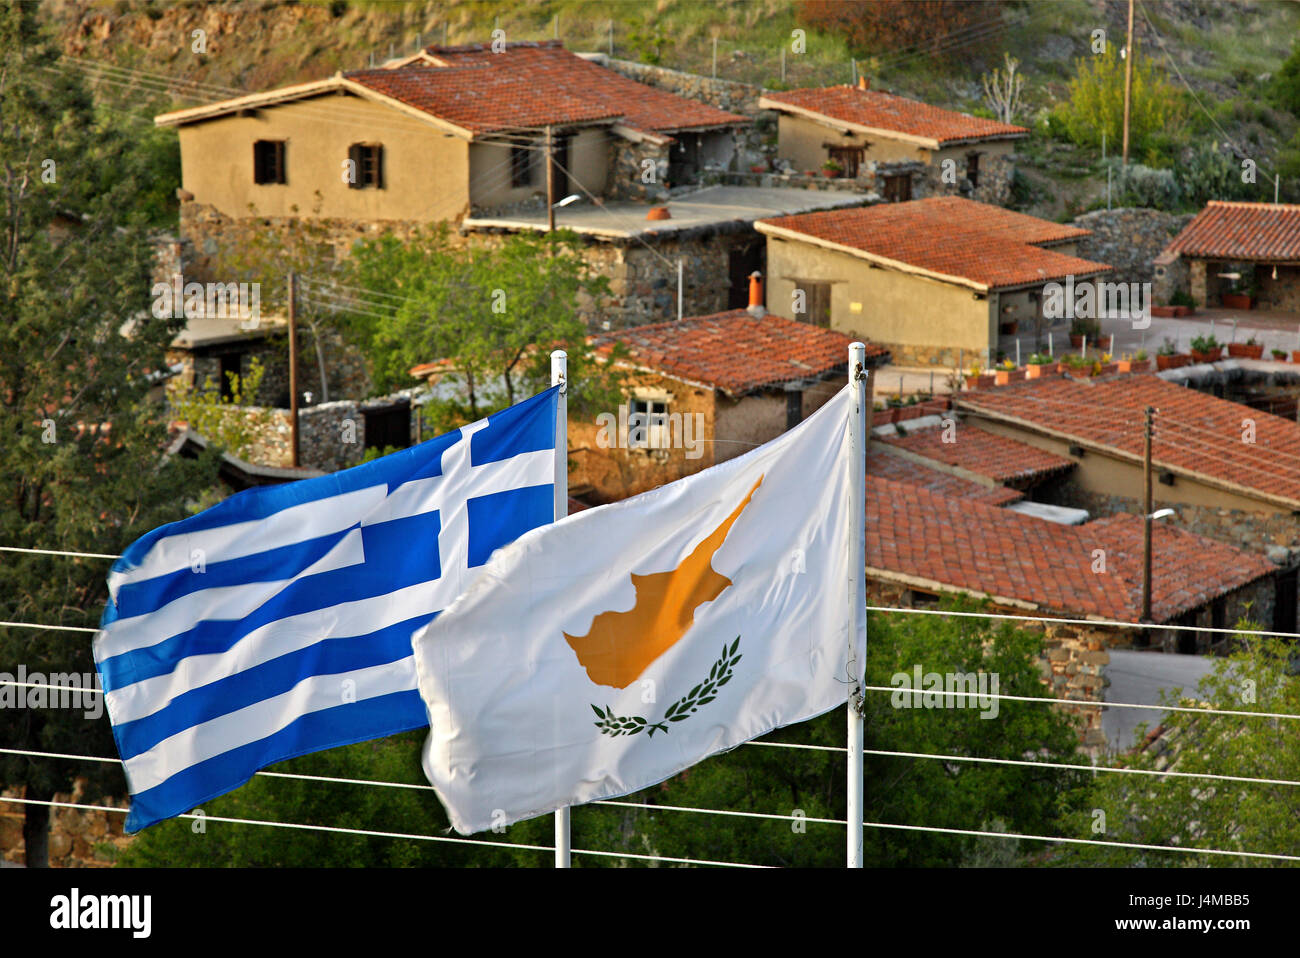 Greek and Cypriot flag, side by side at Fikardou village, one of the most beautiful mountainous villages of Cyprus, - Stock Image